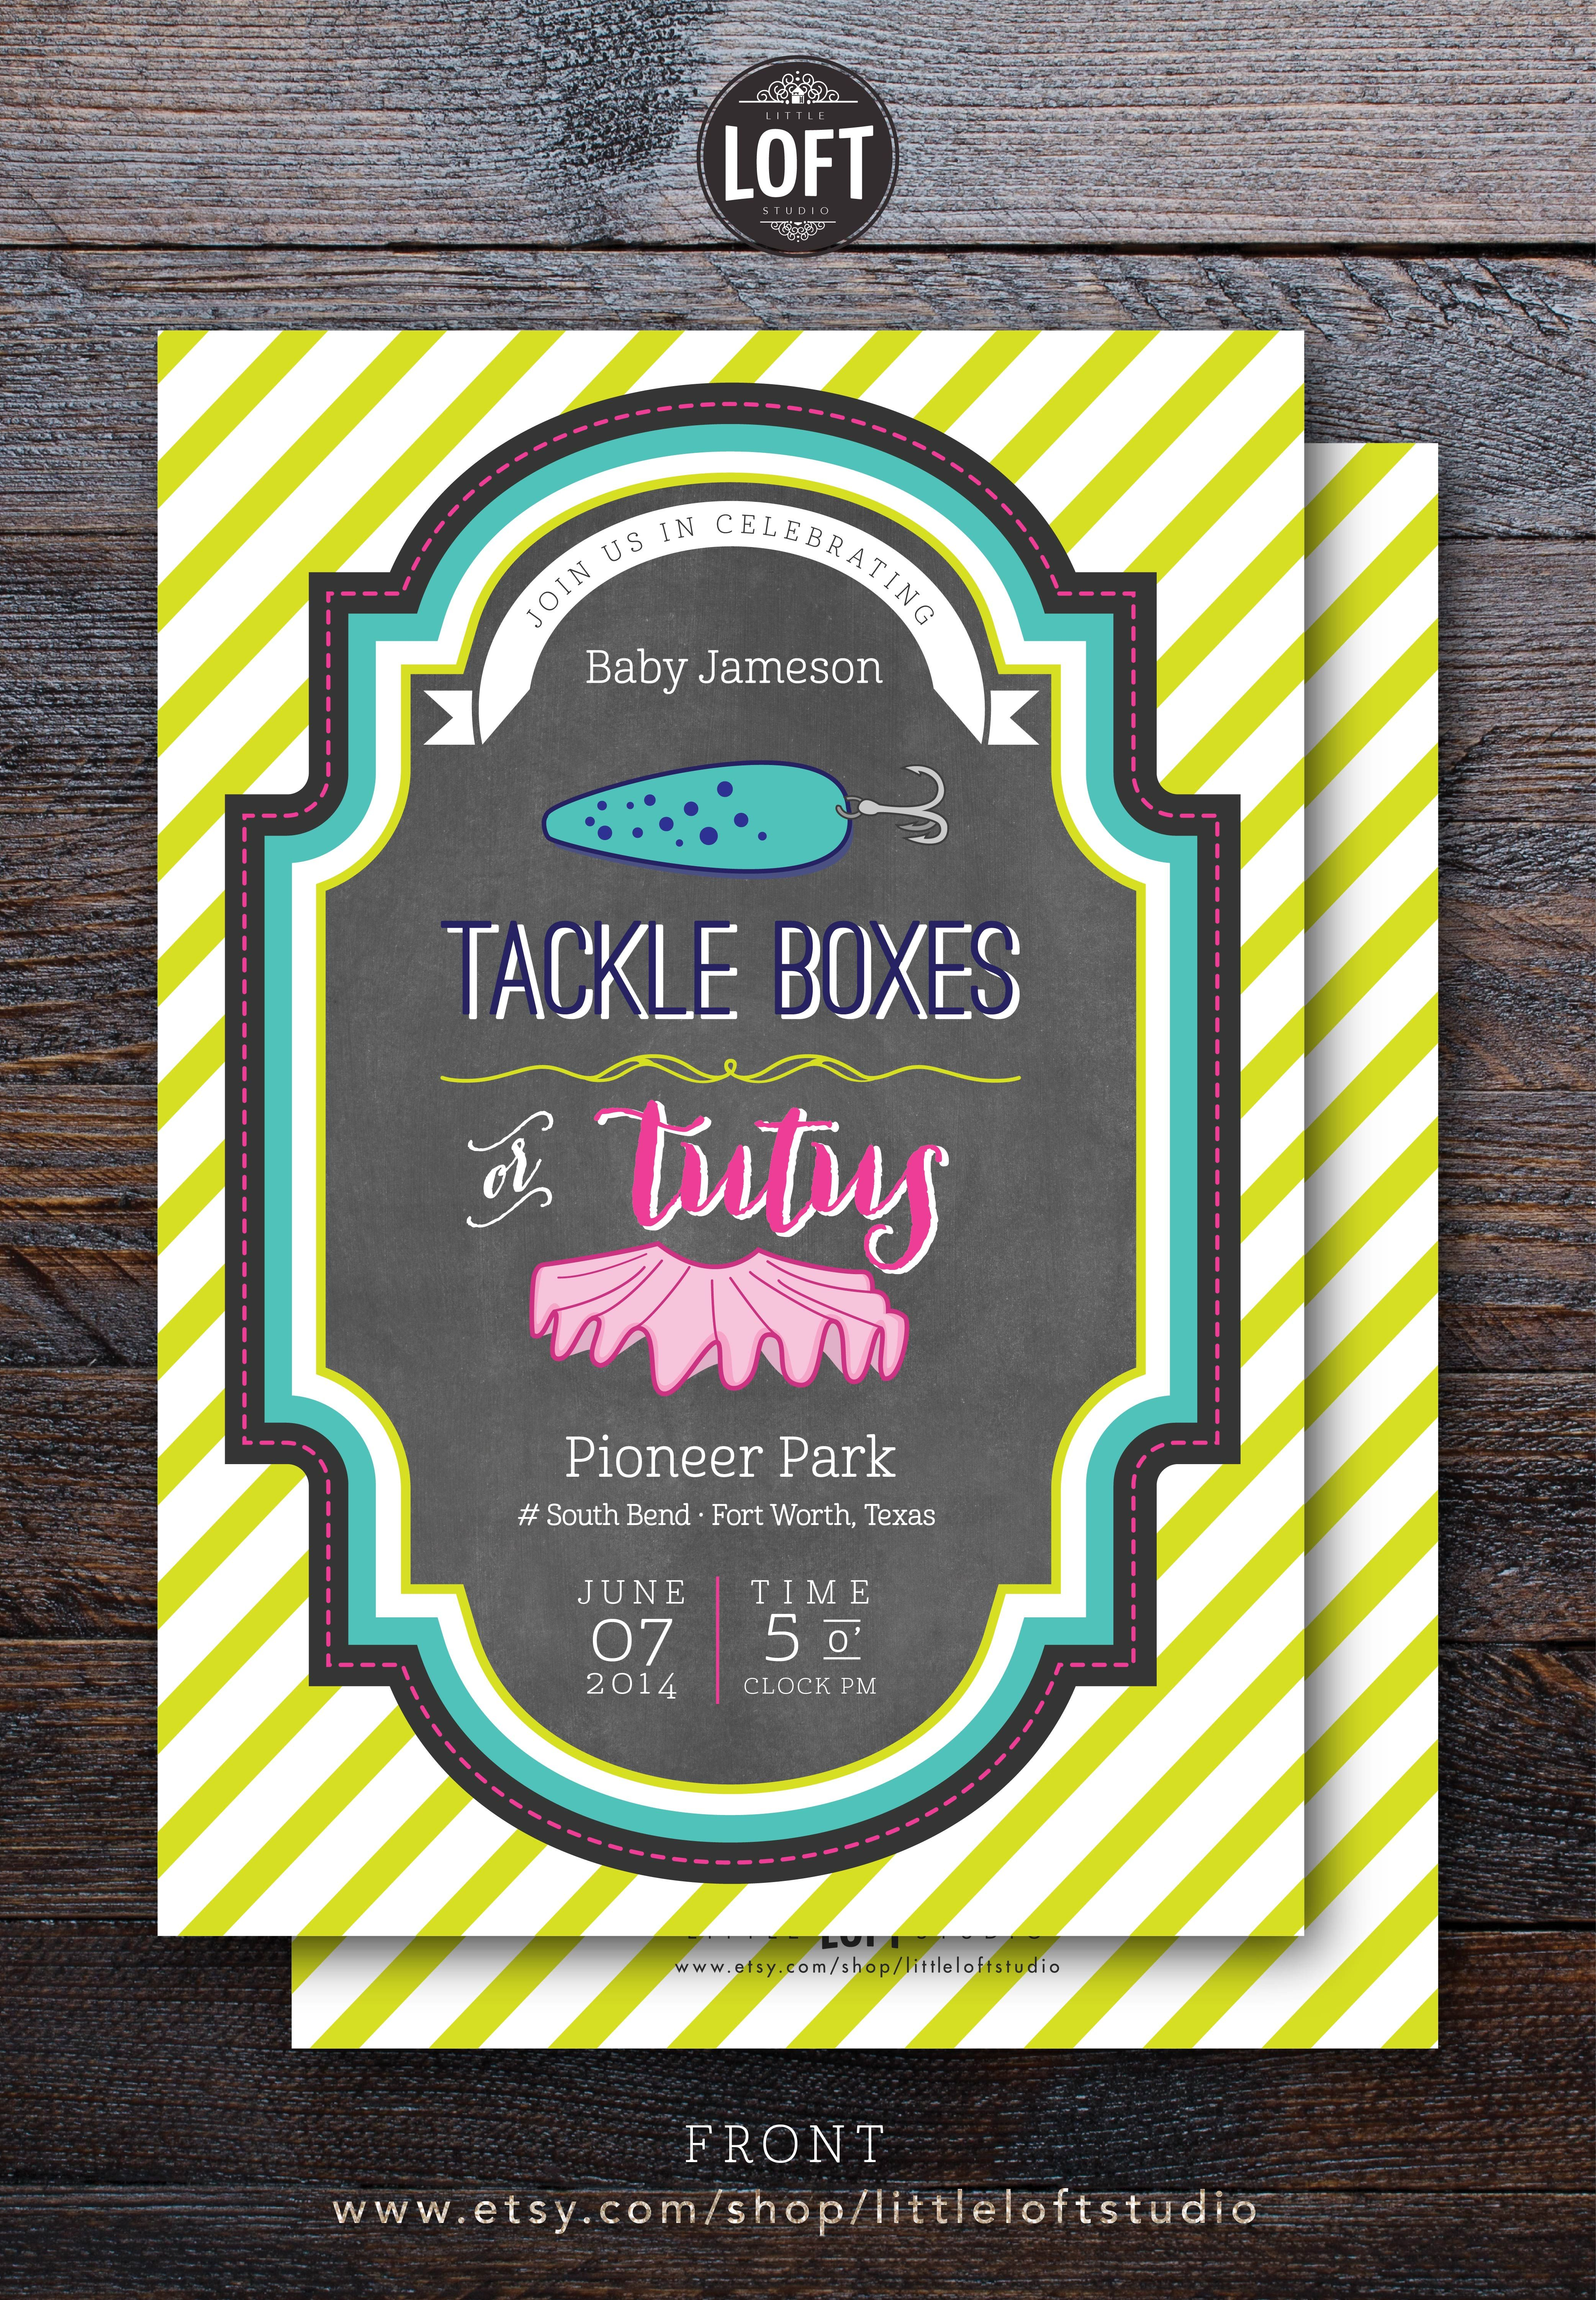 Unique Gender Reveal - Tackle Boxes or Tutus Gender Reveal Party ...